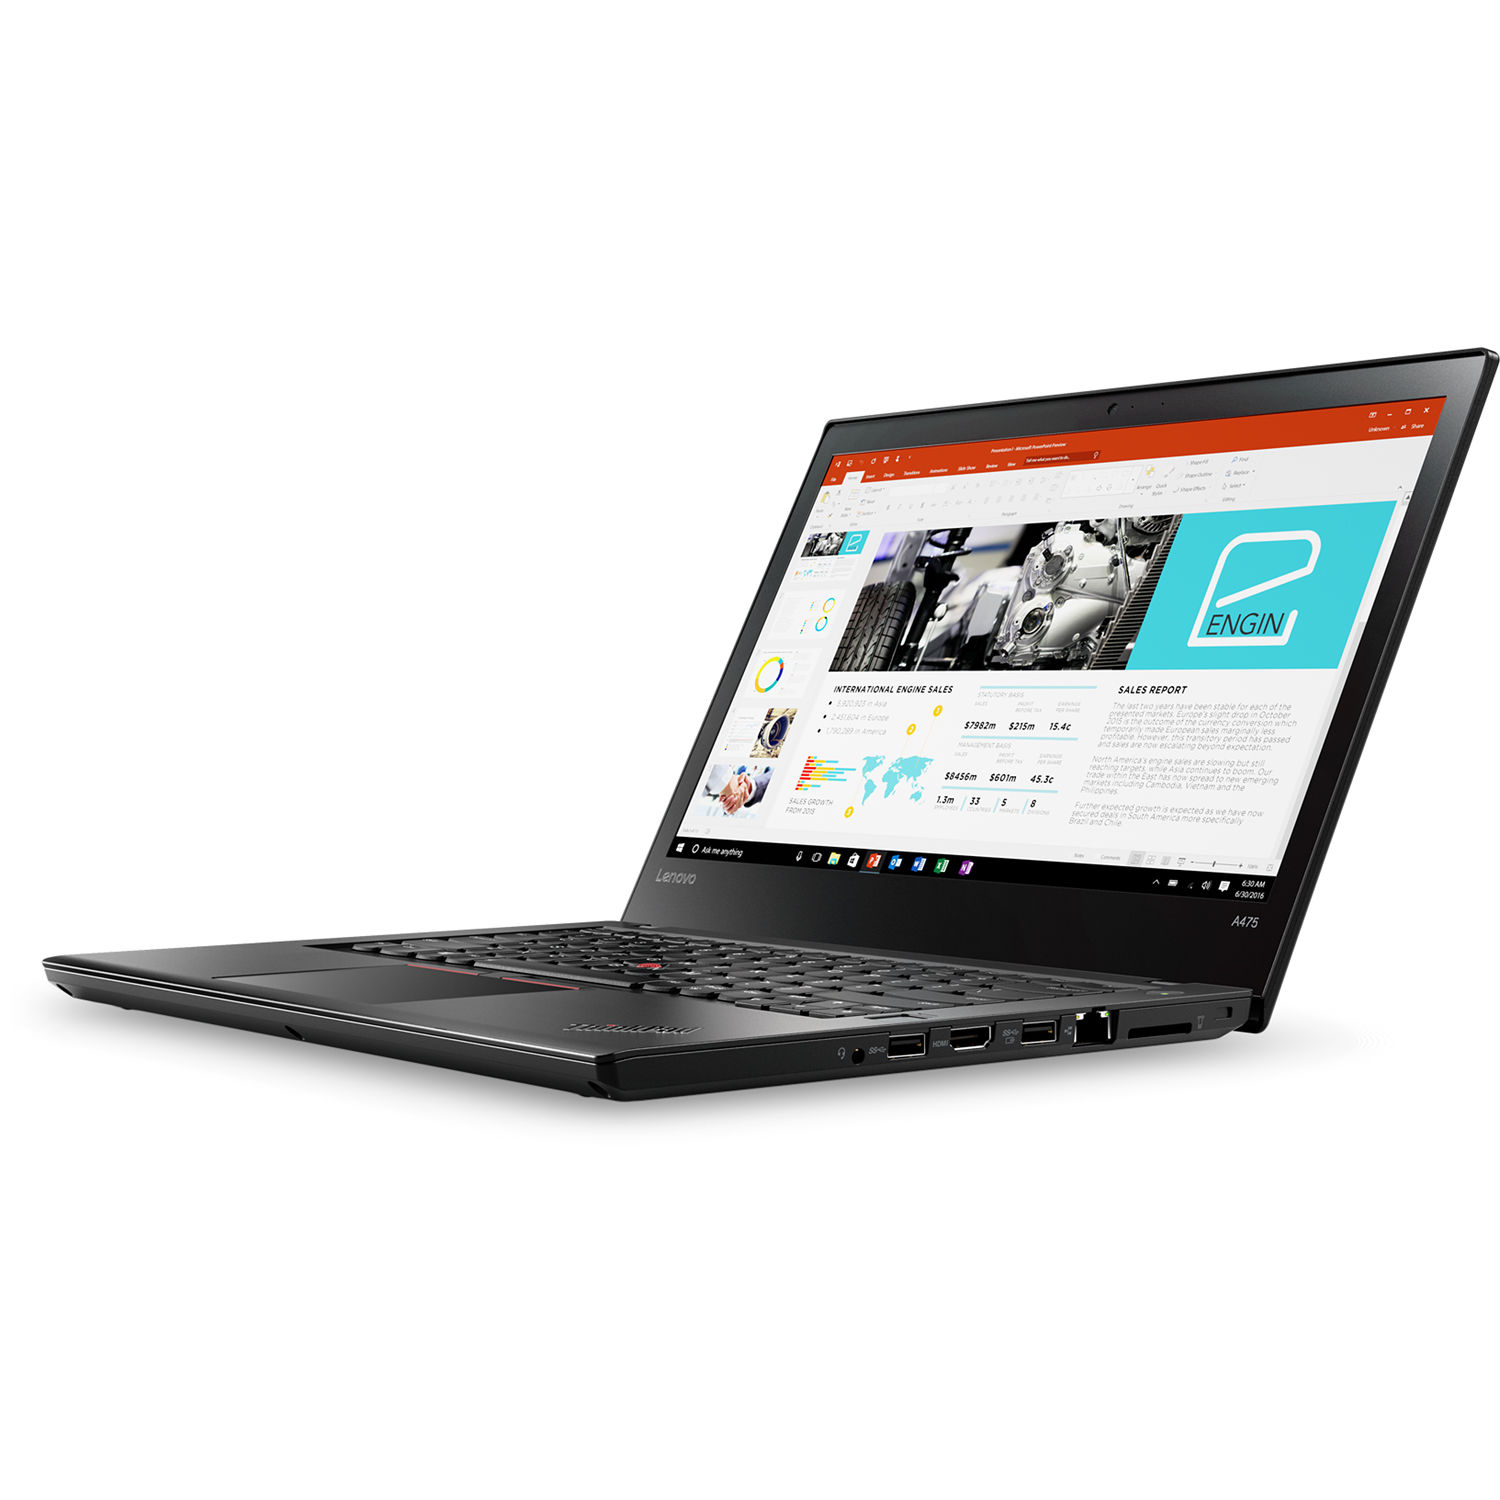 "Lenovo Thinkpad A475 AMD PRO A12-8830B 2.5 Ghz 8GB 120GB SSD Webcam 14.1""  Win 10 Pro - L2411204O GARANZIA LENOVO ON-SITE"